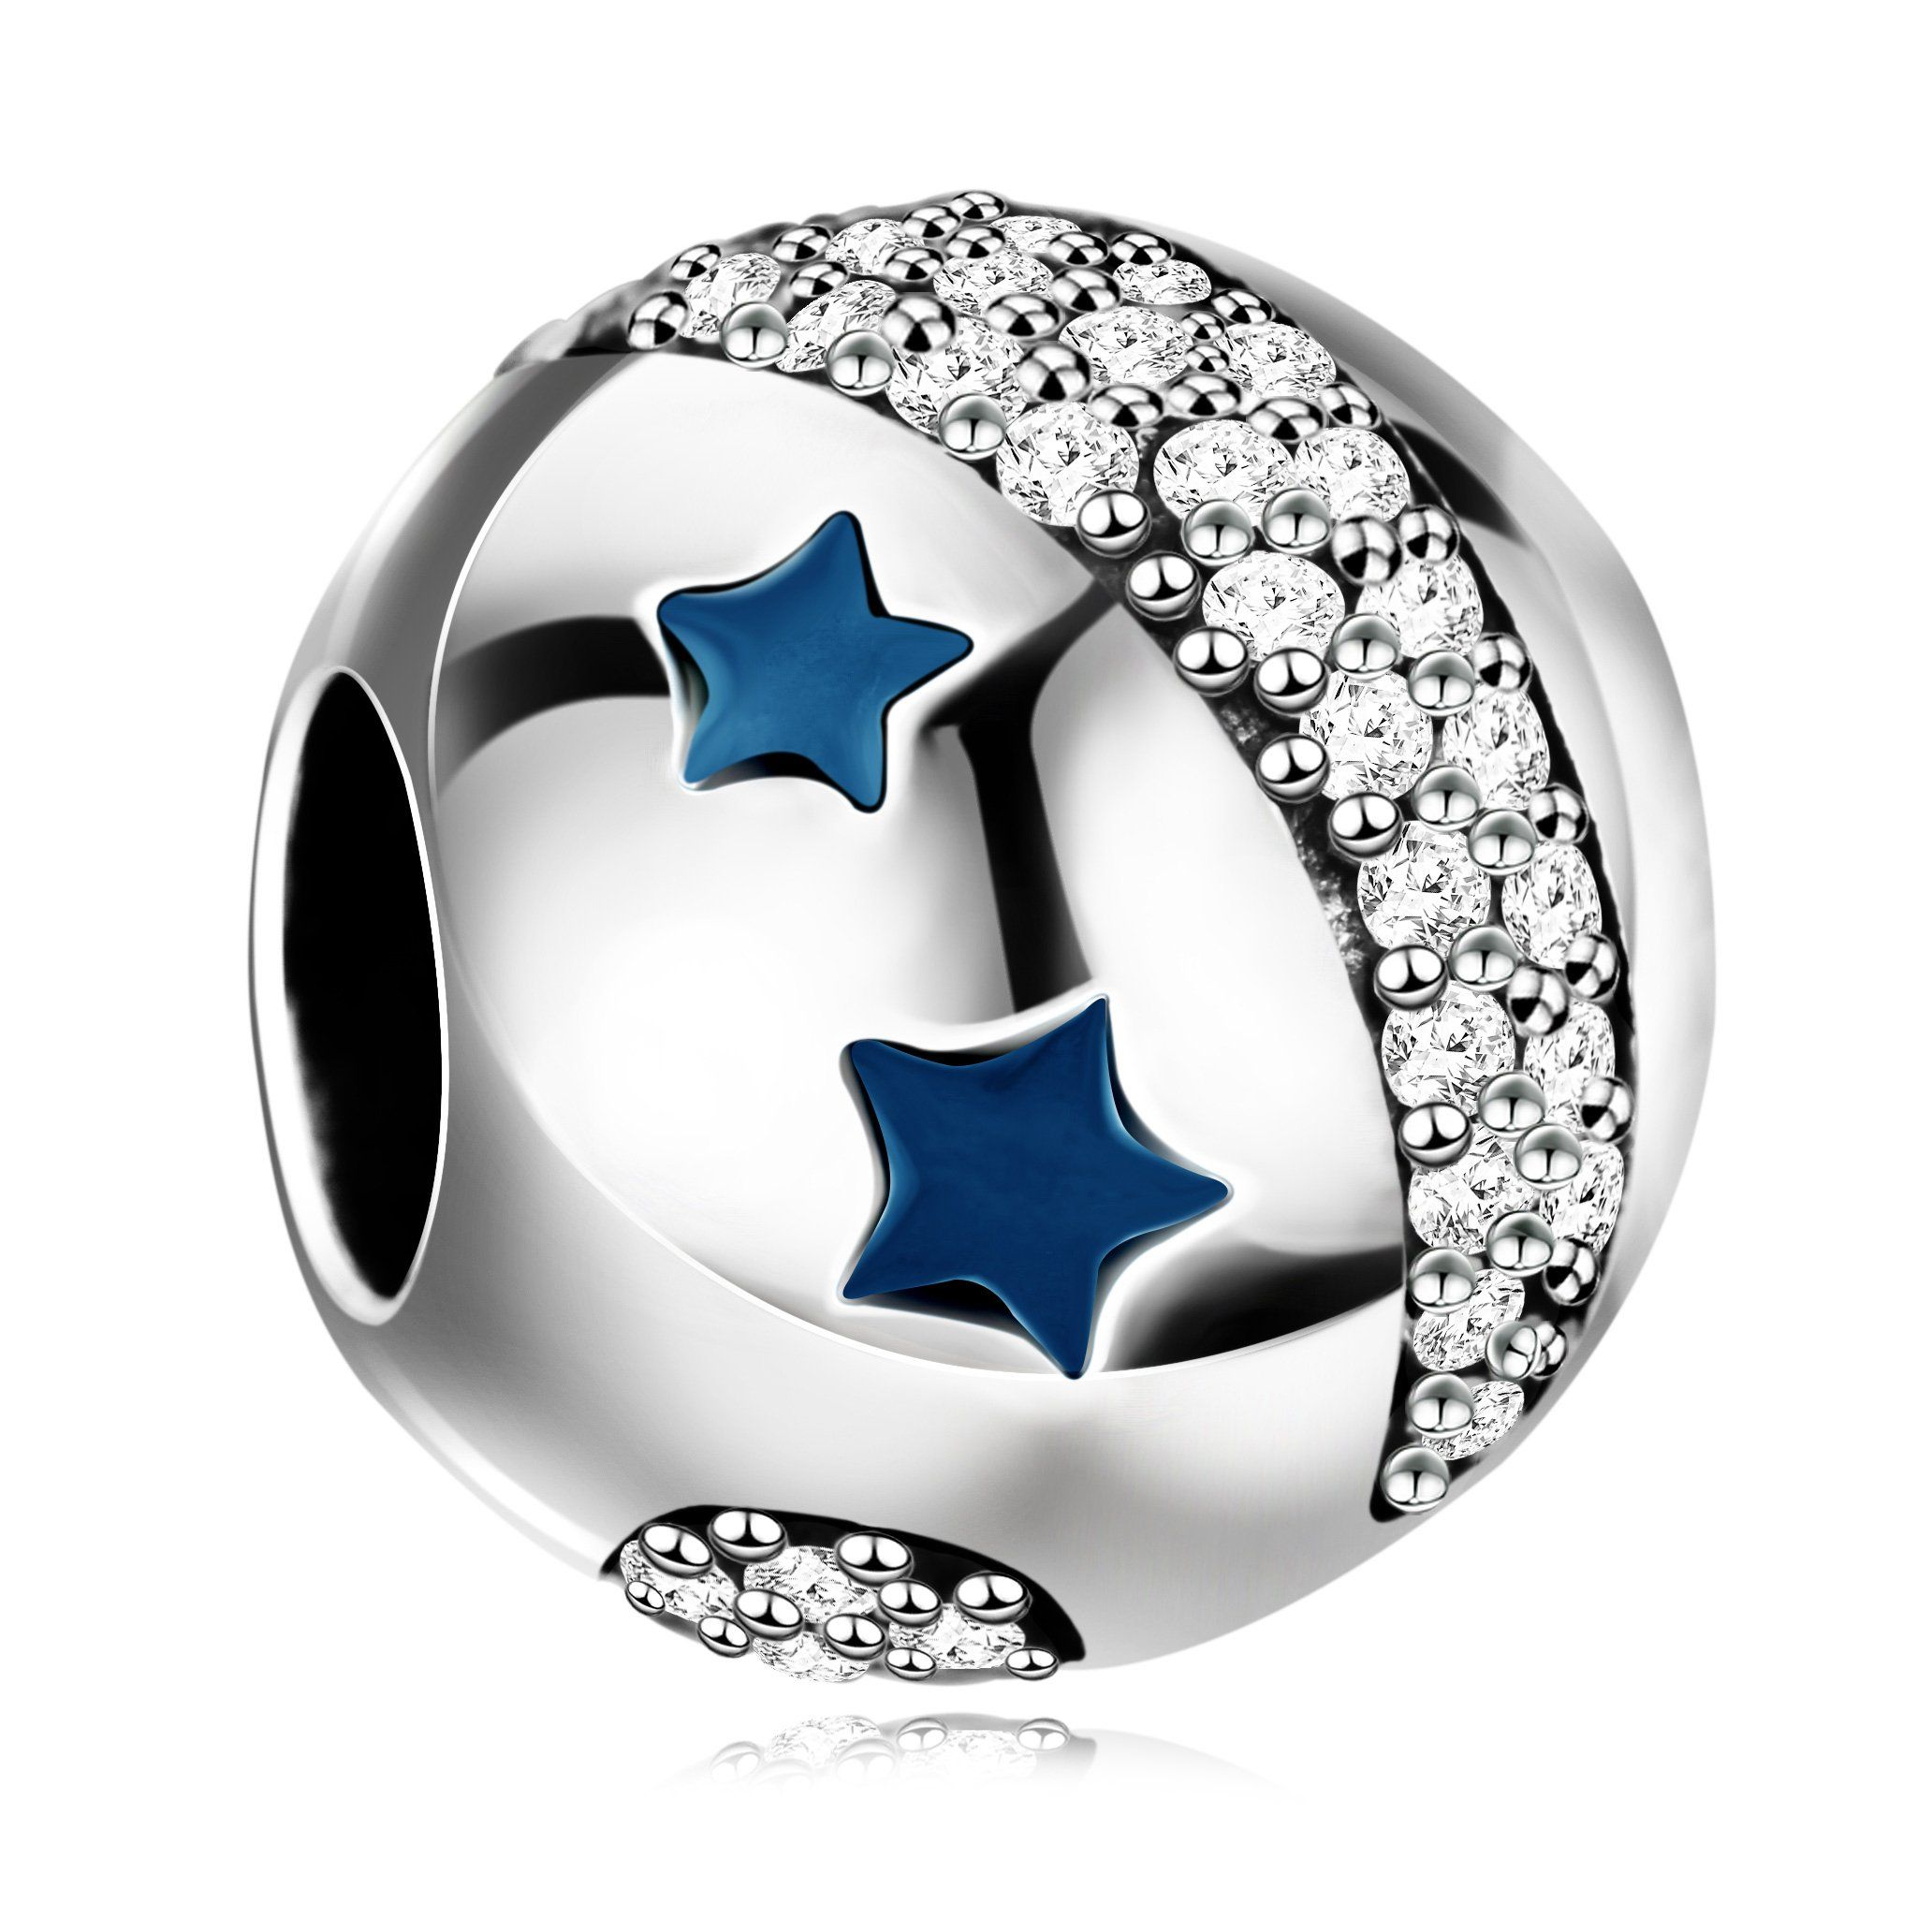 51db441d9 925 Sterling Silver Twinkling Night Star Charms Bead for European Snake  Chain Bracelets. Perfect fits